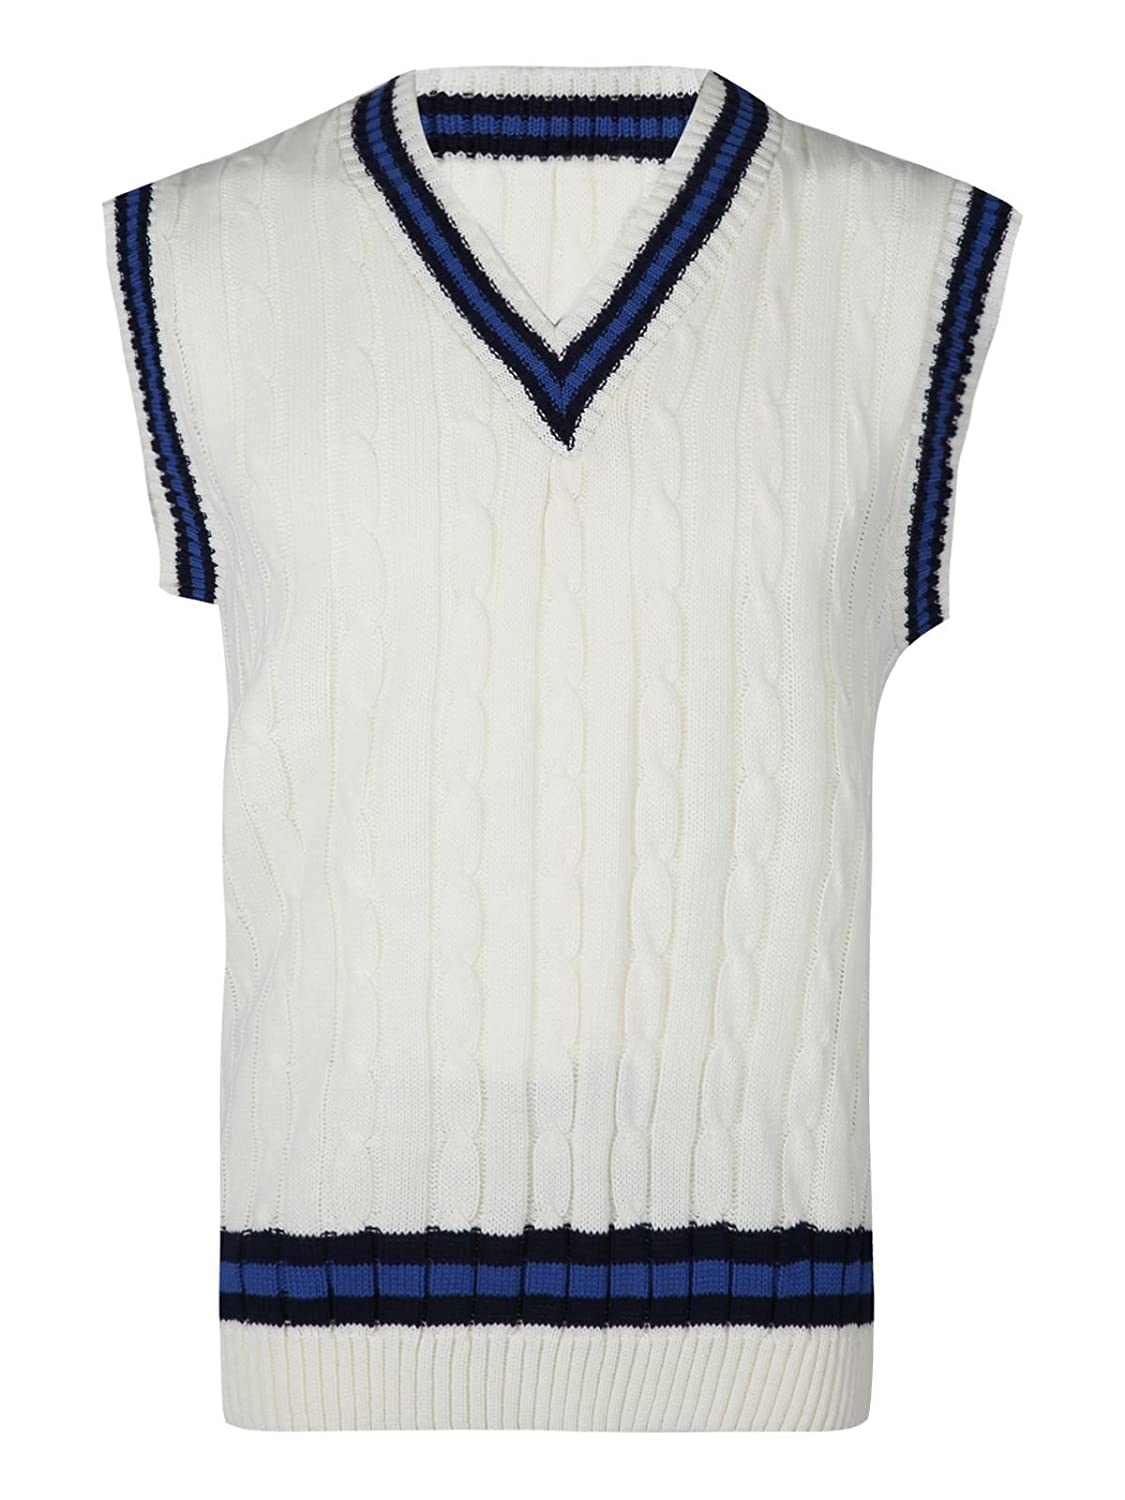 1920s Style Mens Vests Cricket Cable Knitted Tank Top Boys Sleeveless V Neck Ribbed Top S M L XL $18.99 AT vintagedancer.com